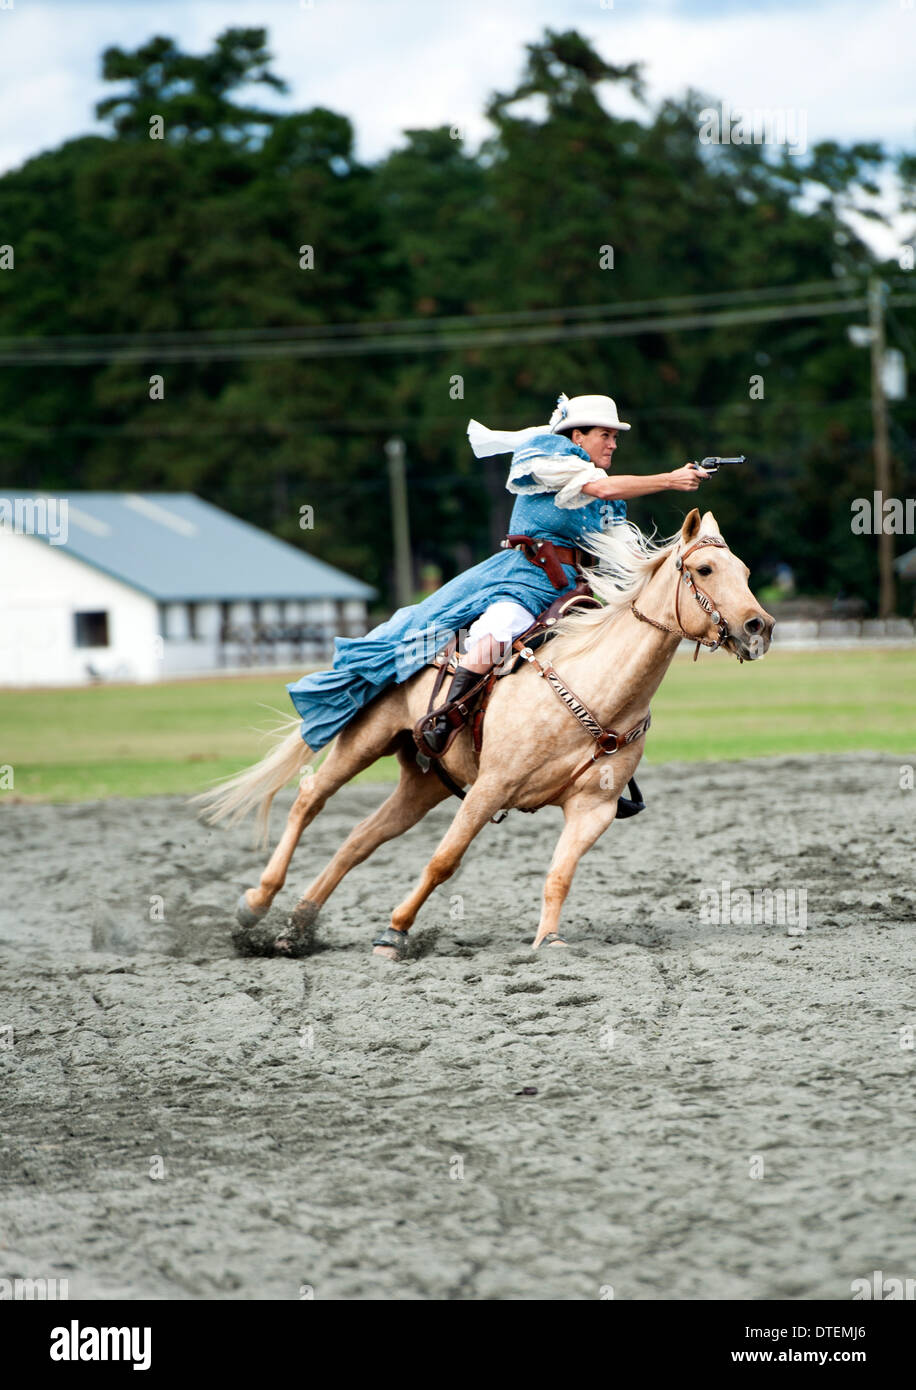 A cowgirl on a horse riding at full gallop with pistol drawn